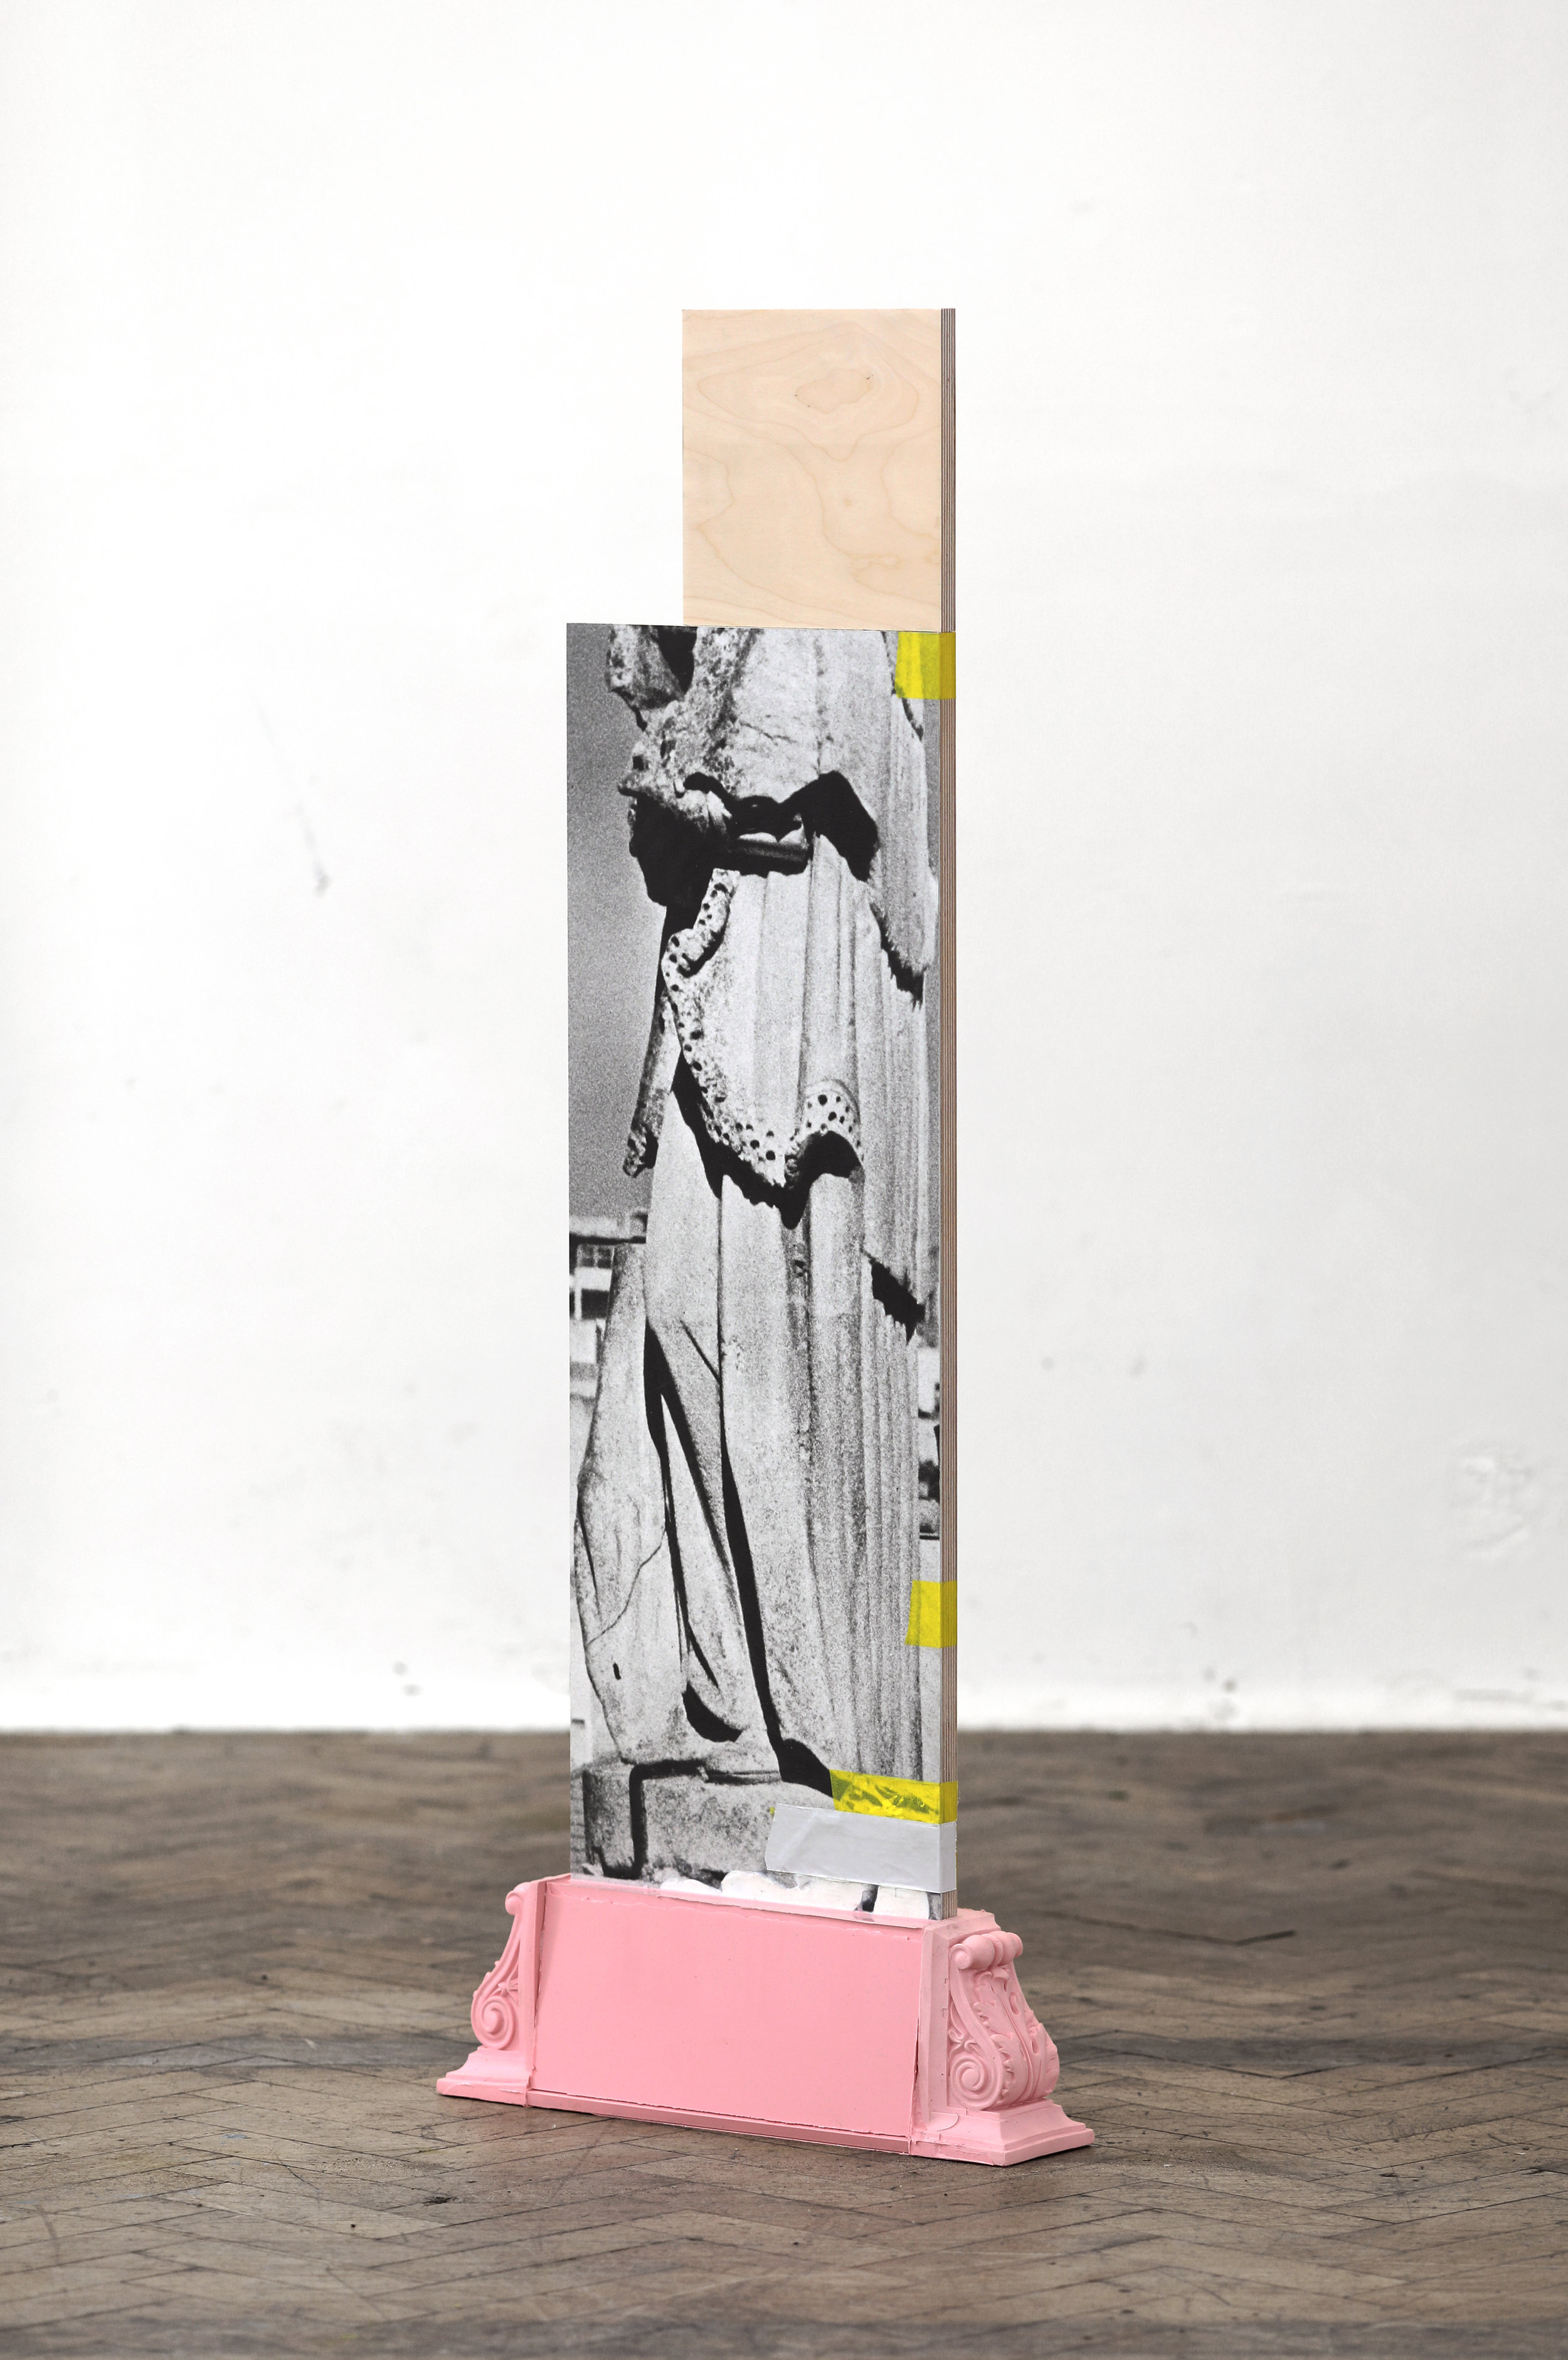 empty in the other    Hahnemüle print, silicon, tape, aluminium and birch plywood  132 x 51.5 x 11 cm  2019